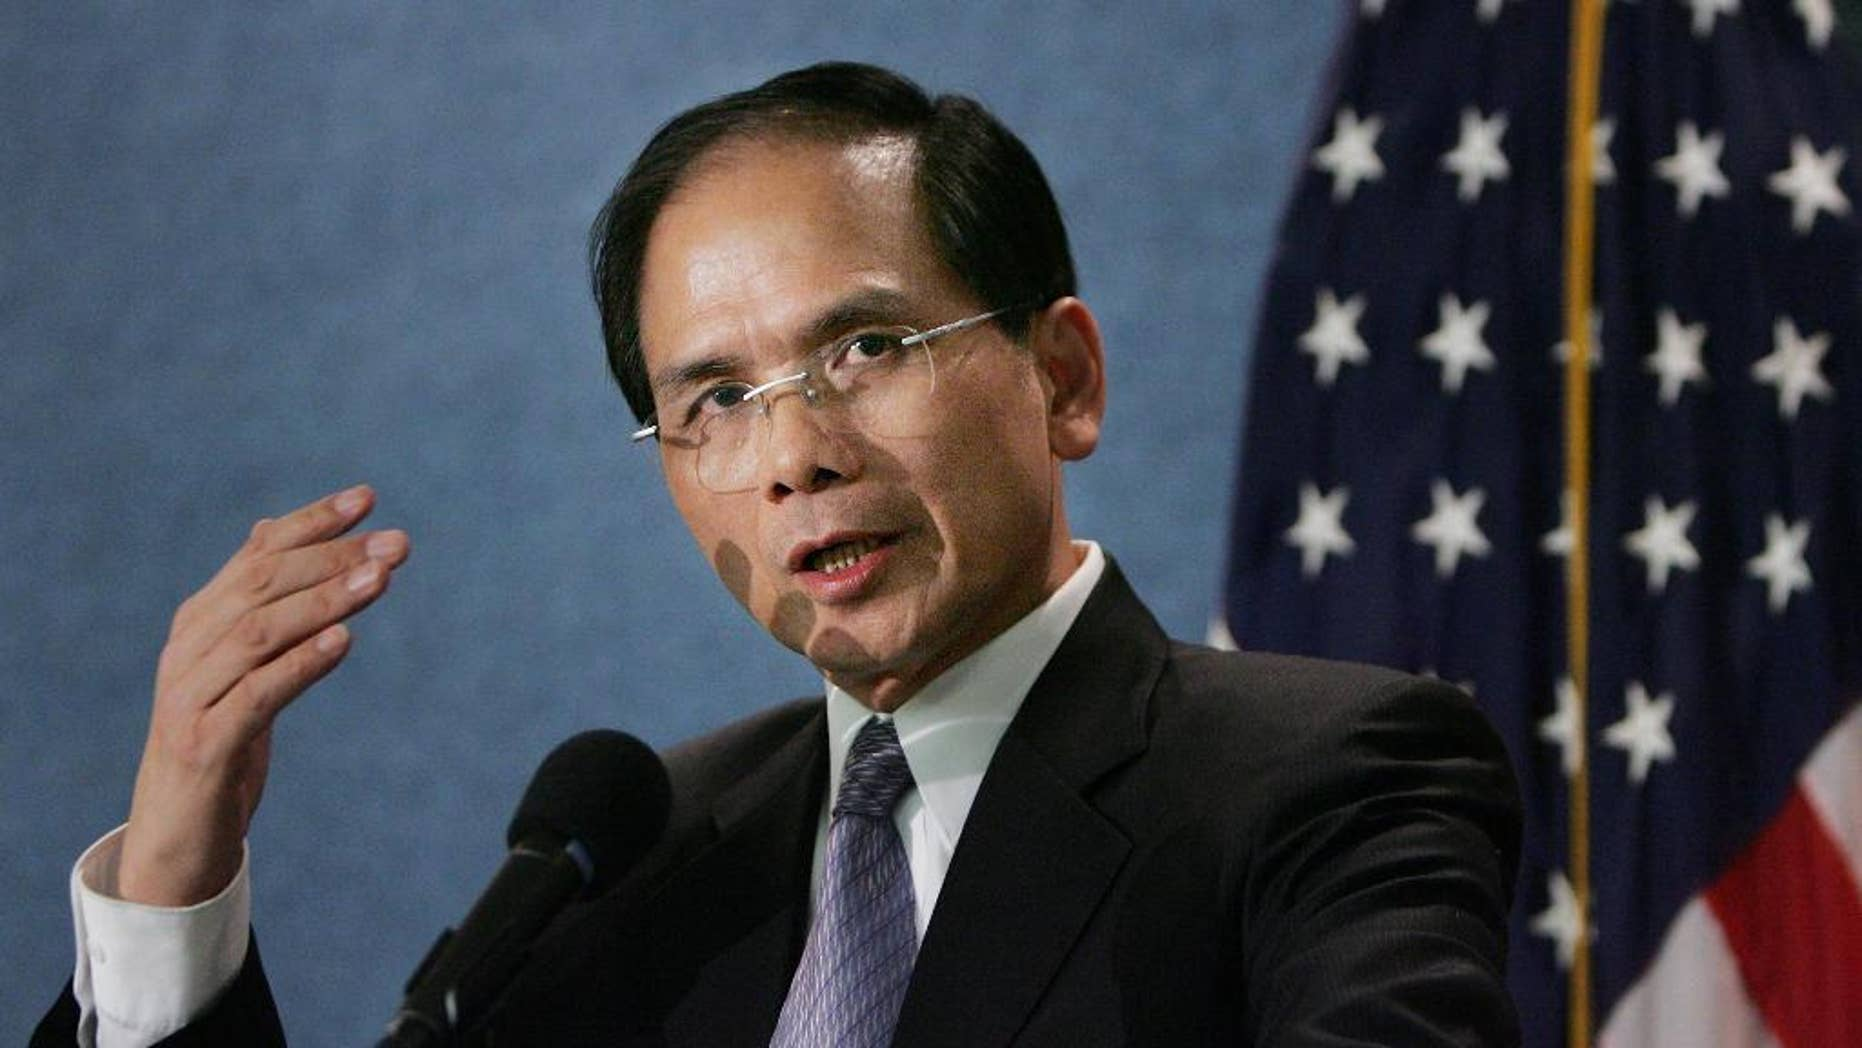 FILE - In this Tuesday, Sept. 12, 2006, file photo, Democratic Progressive Party member Yu Shyi-kun, speaks to the media during a news conference at the National Press Club in Washington DC. Yu will be joined by lawmakers and local government officials representing both Taiwan's ruling and opposition parties at Donald Trump's inauguration Friday, highlighting the unusually high profile during the presidential transition process. (AP Photo/Manuel Balce Ceneta, File)